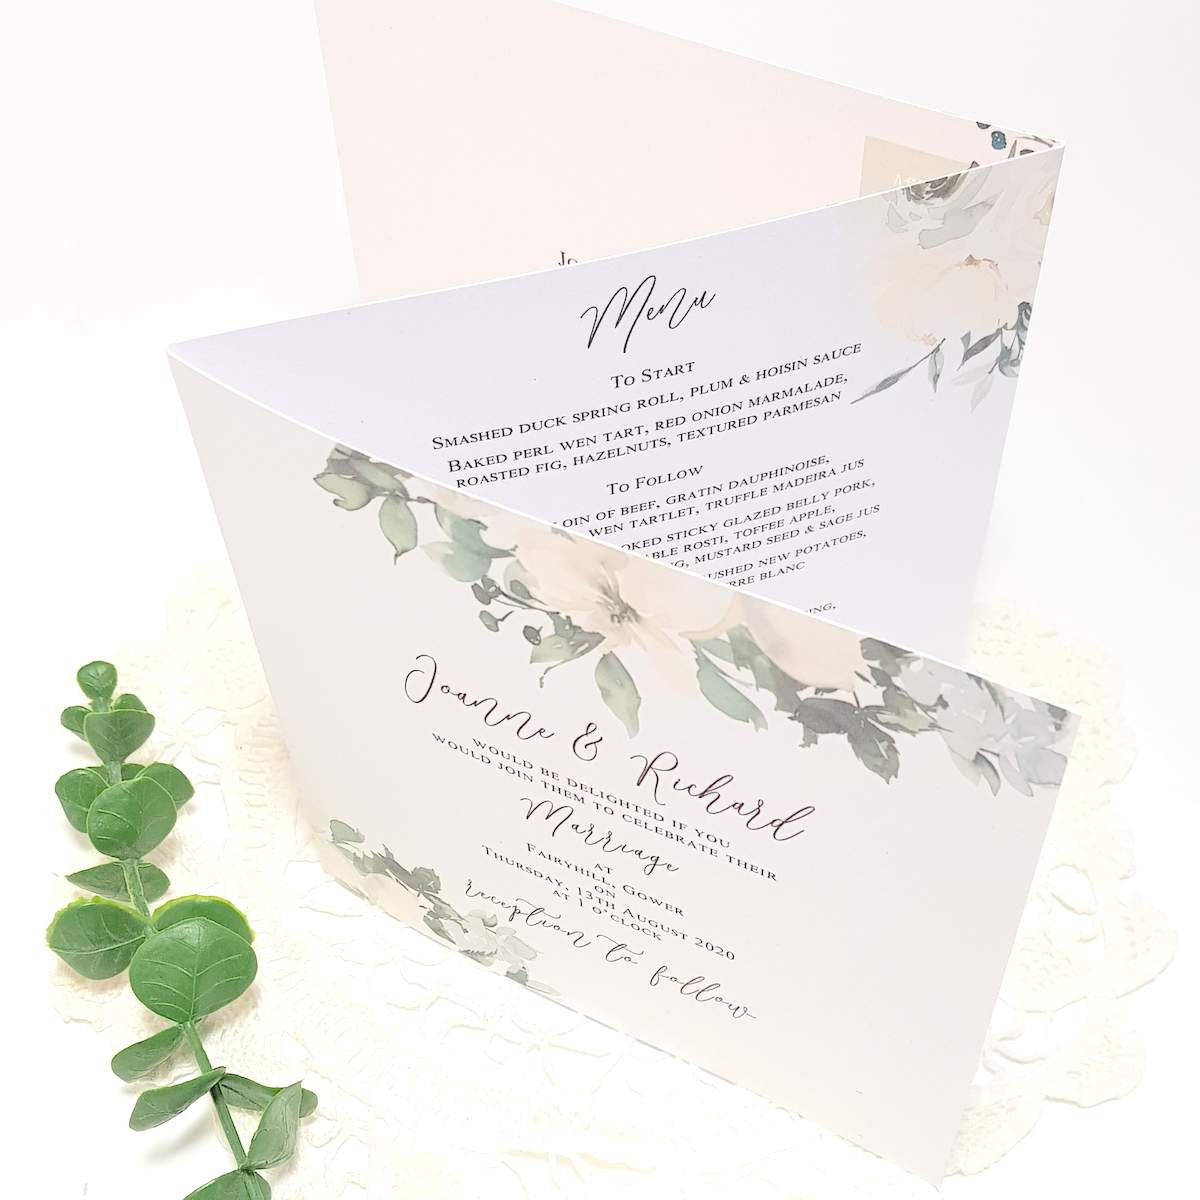 concertina wedding invitation with a pretty greenery and white floral design